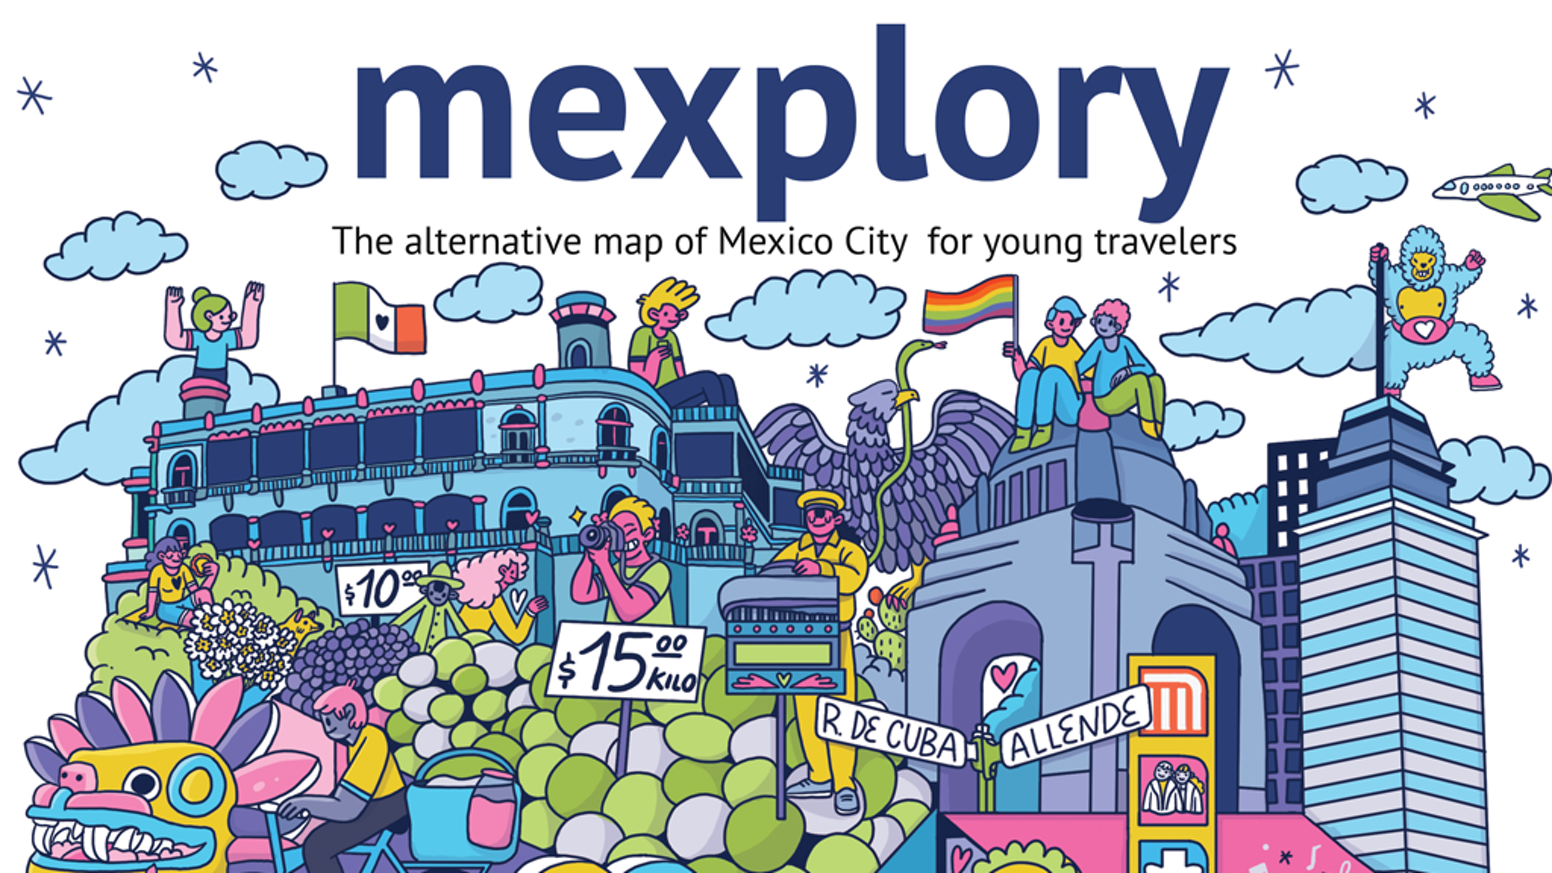 Mexplory: The alternative map of Mexico City by Karina y Paola ... on a map of tamaulipas, a map of budapest, a map of montevideo, a map of popocatepetl, a map of nassau, a map of the holy land, a map of rio de janeiro, a map of algiers, a map of los cabos, a map of the southwest, a map of milan, a map of harare, a map of zona rosa, a map of sinaloa, a map of portland, a map of latin america, a map of roatan, a map of caracas, a map of everglades national park, a map of havana,